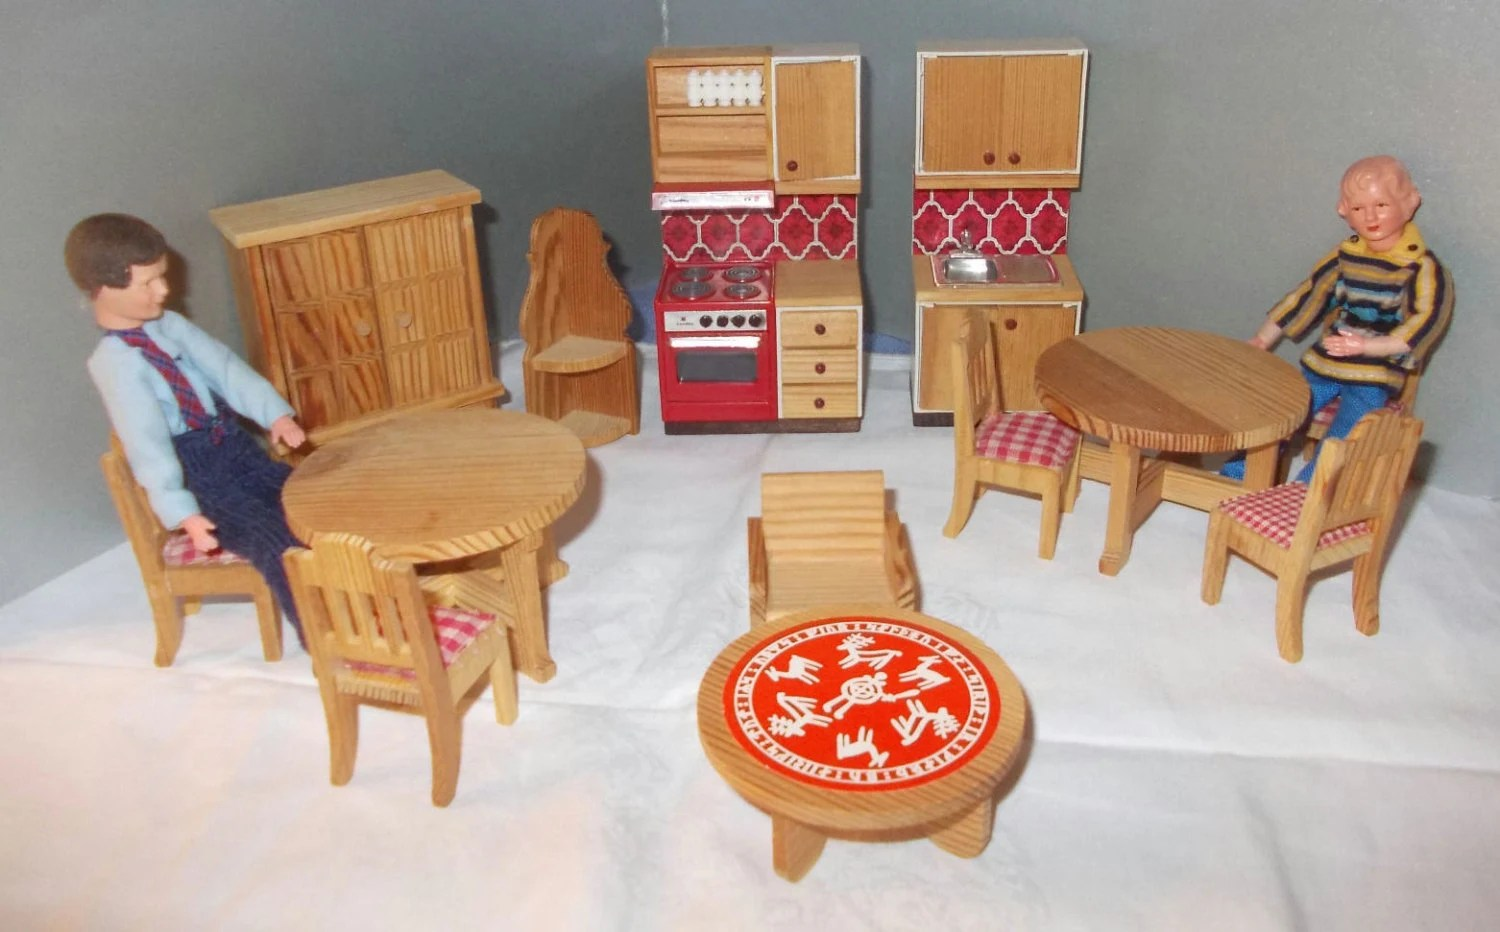 70s doll house furniture convolute 15 pieces lundby for 70s wooden couch